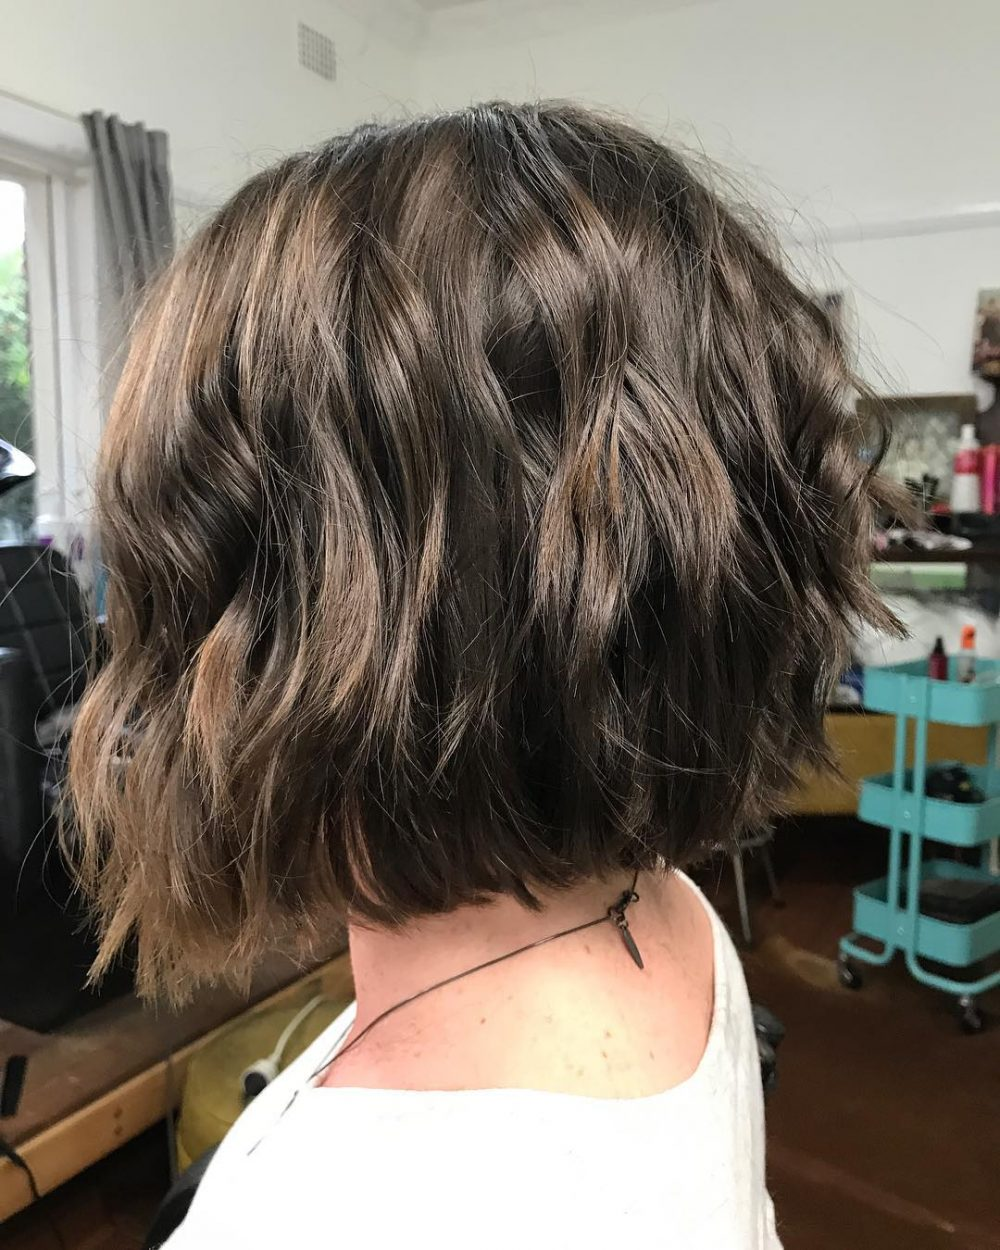 Slightly Concave Blunt Bob hairstyle